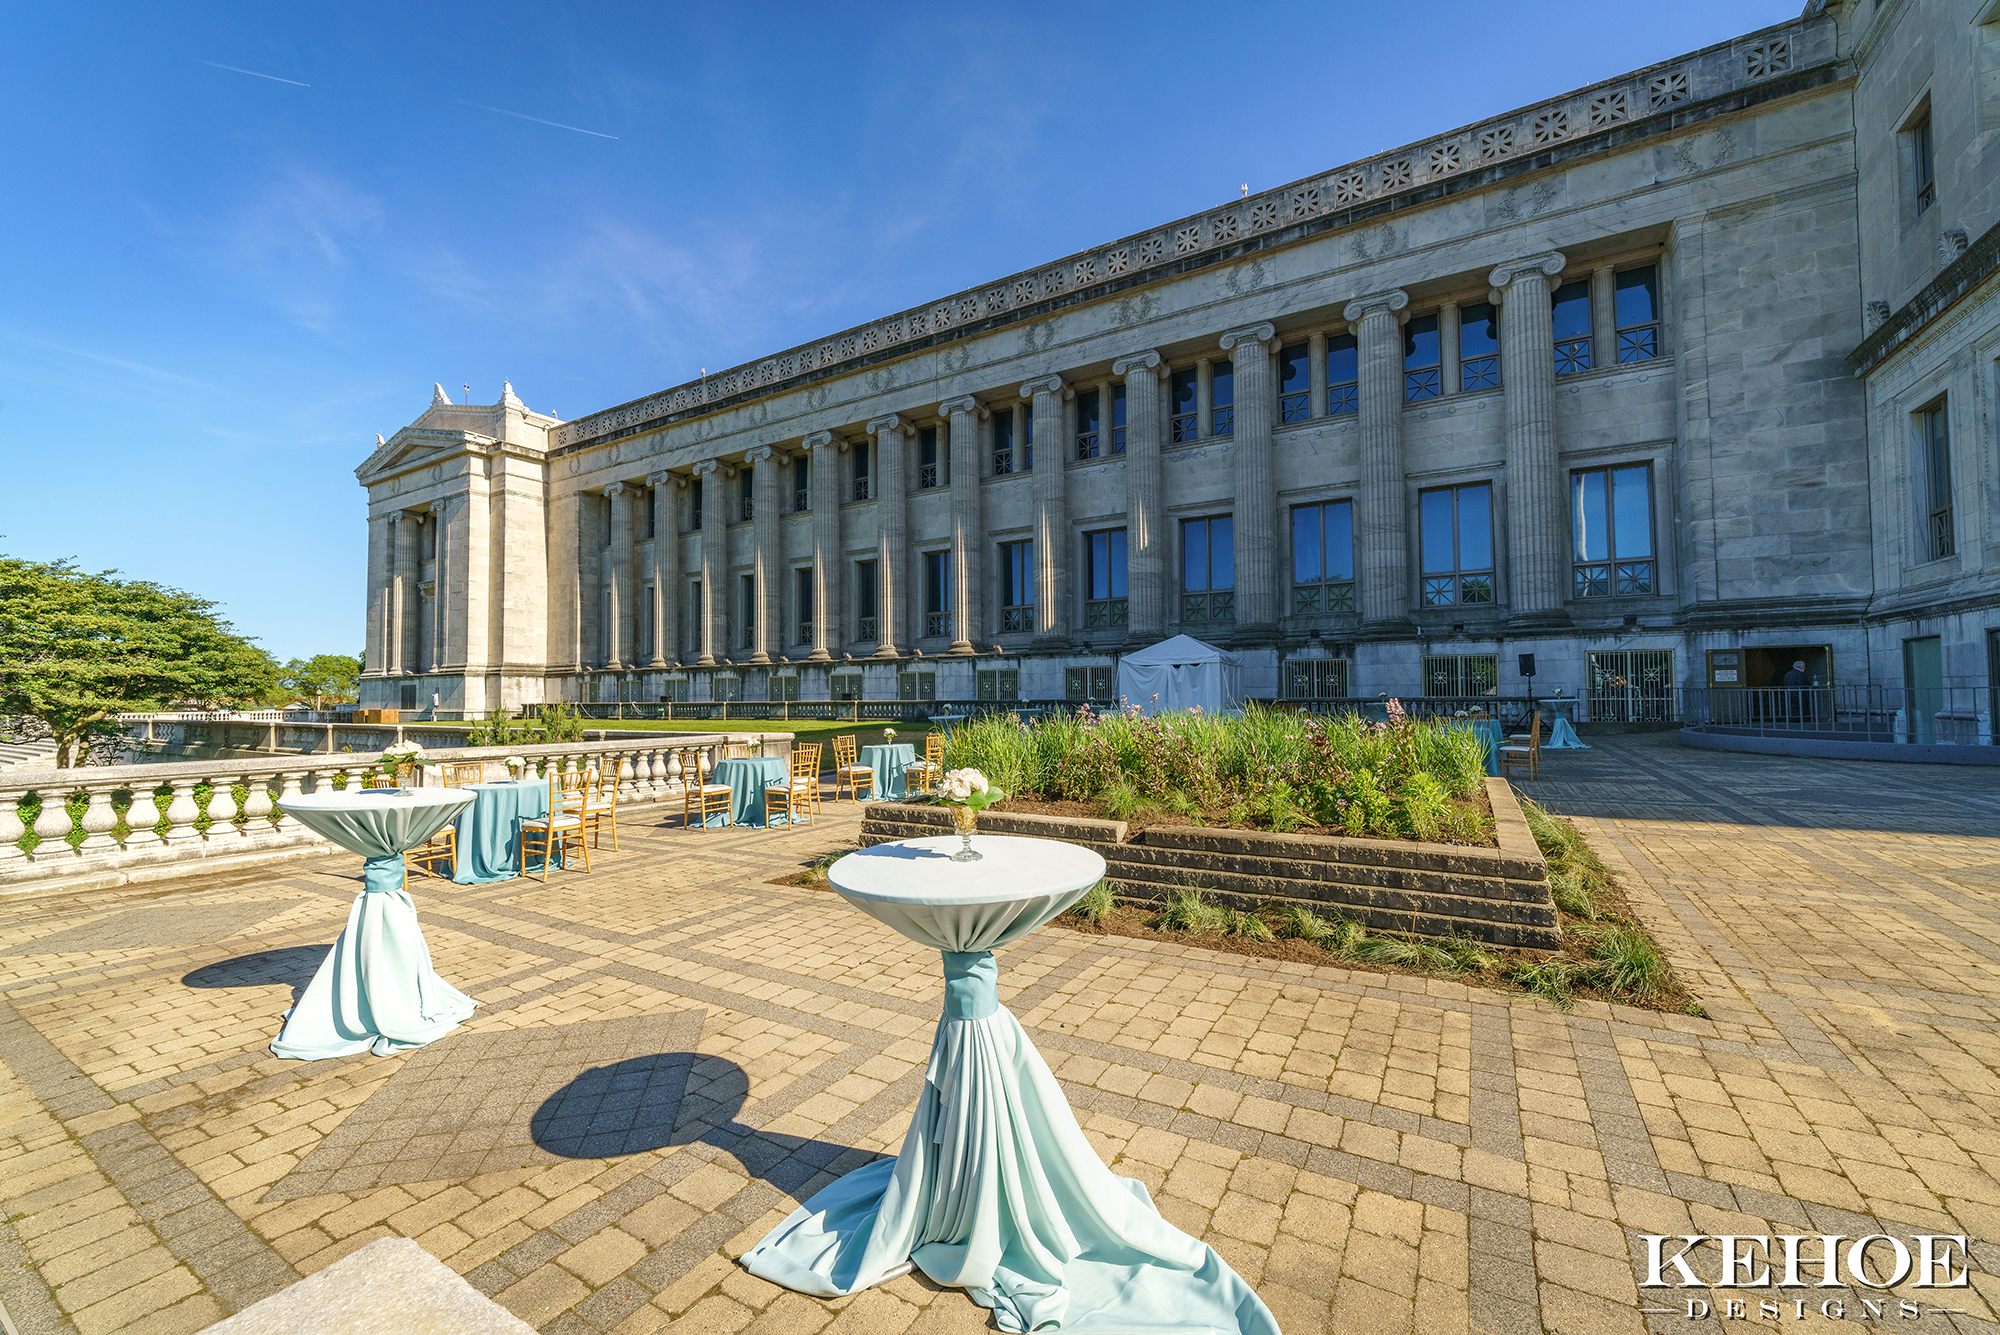 Cocktail tables arranged on the Field Museum's northeast terrace on a sunny day.